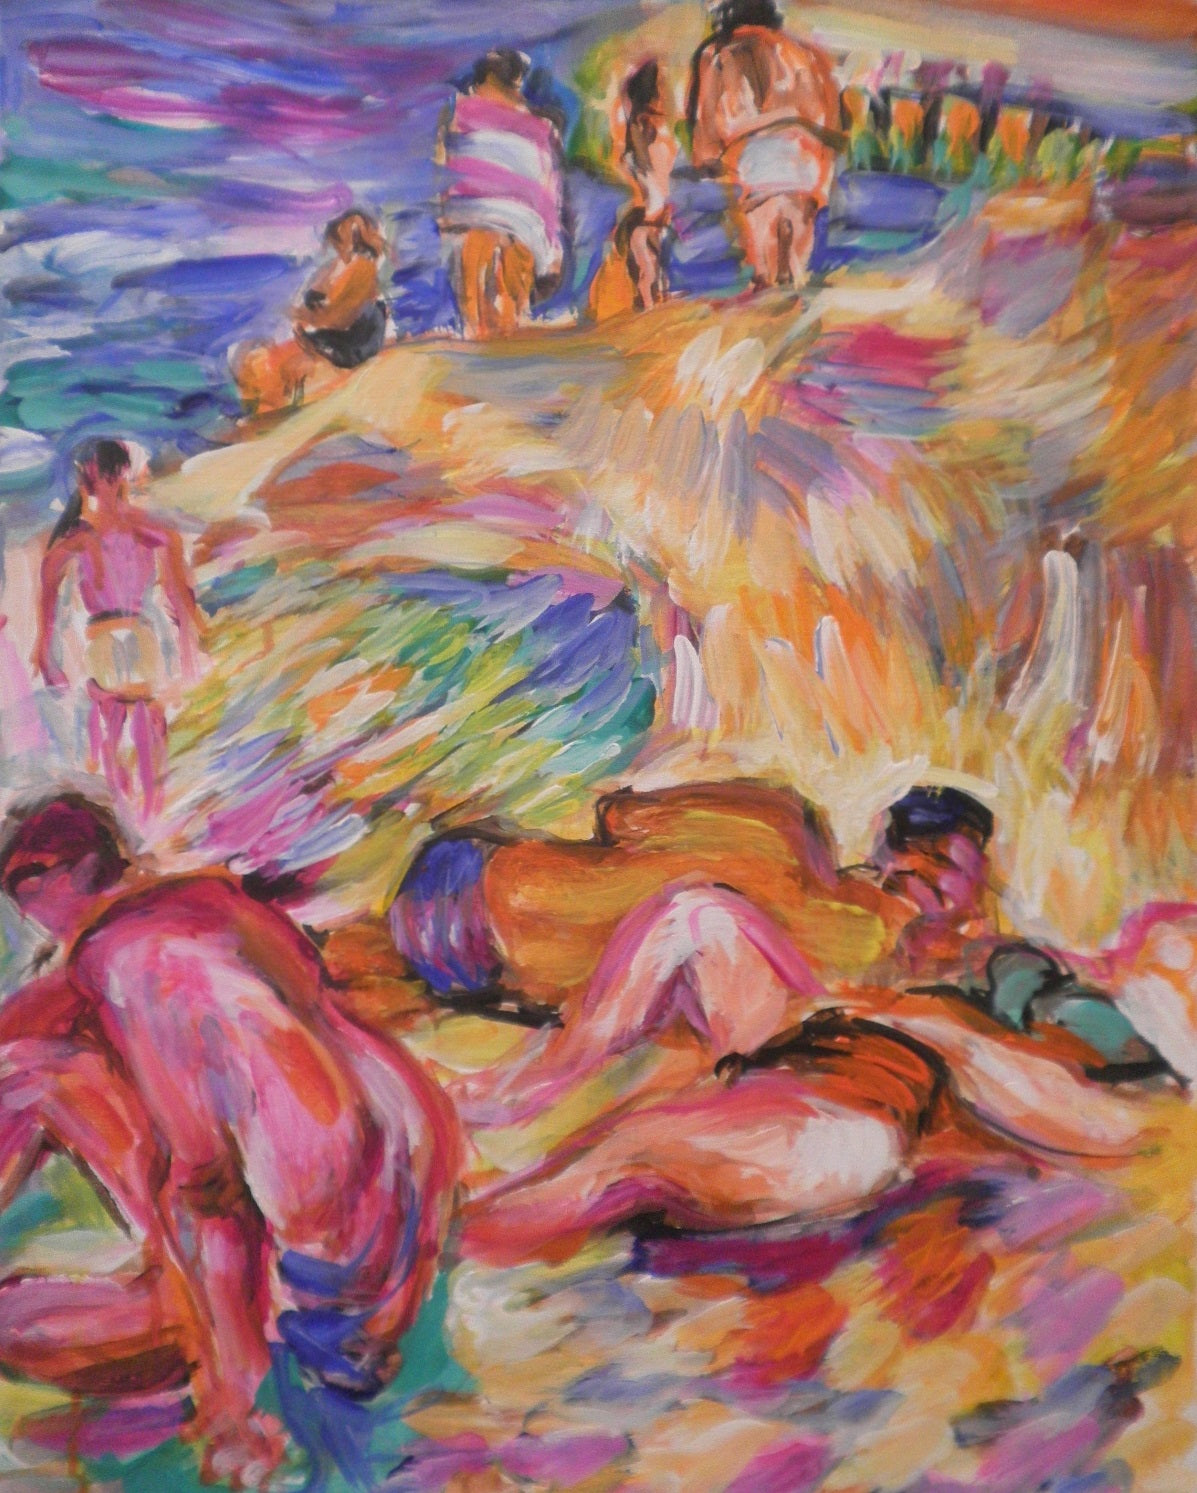 Relaxed Bathers on a Less Busy Day